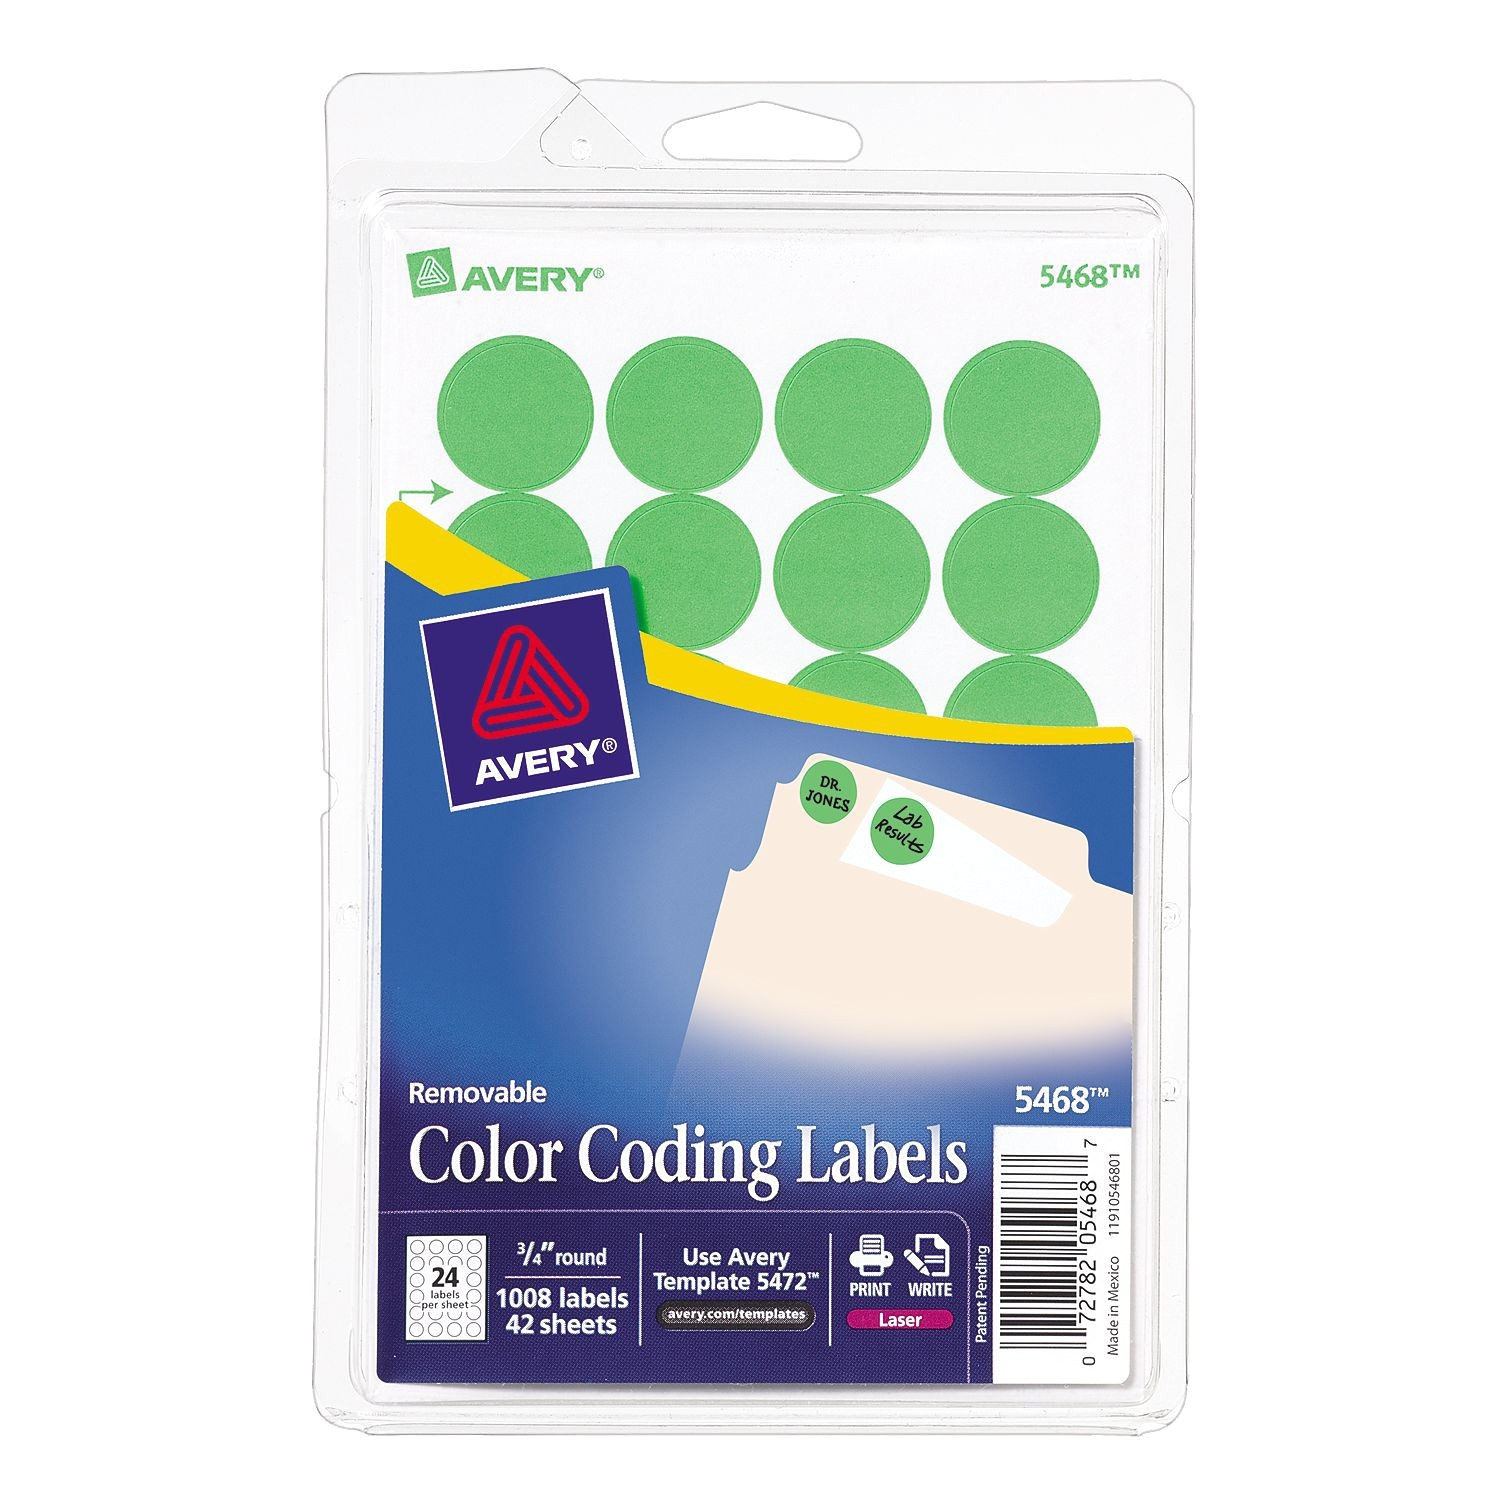 avery 34 round color coding labels ave05468